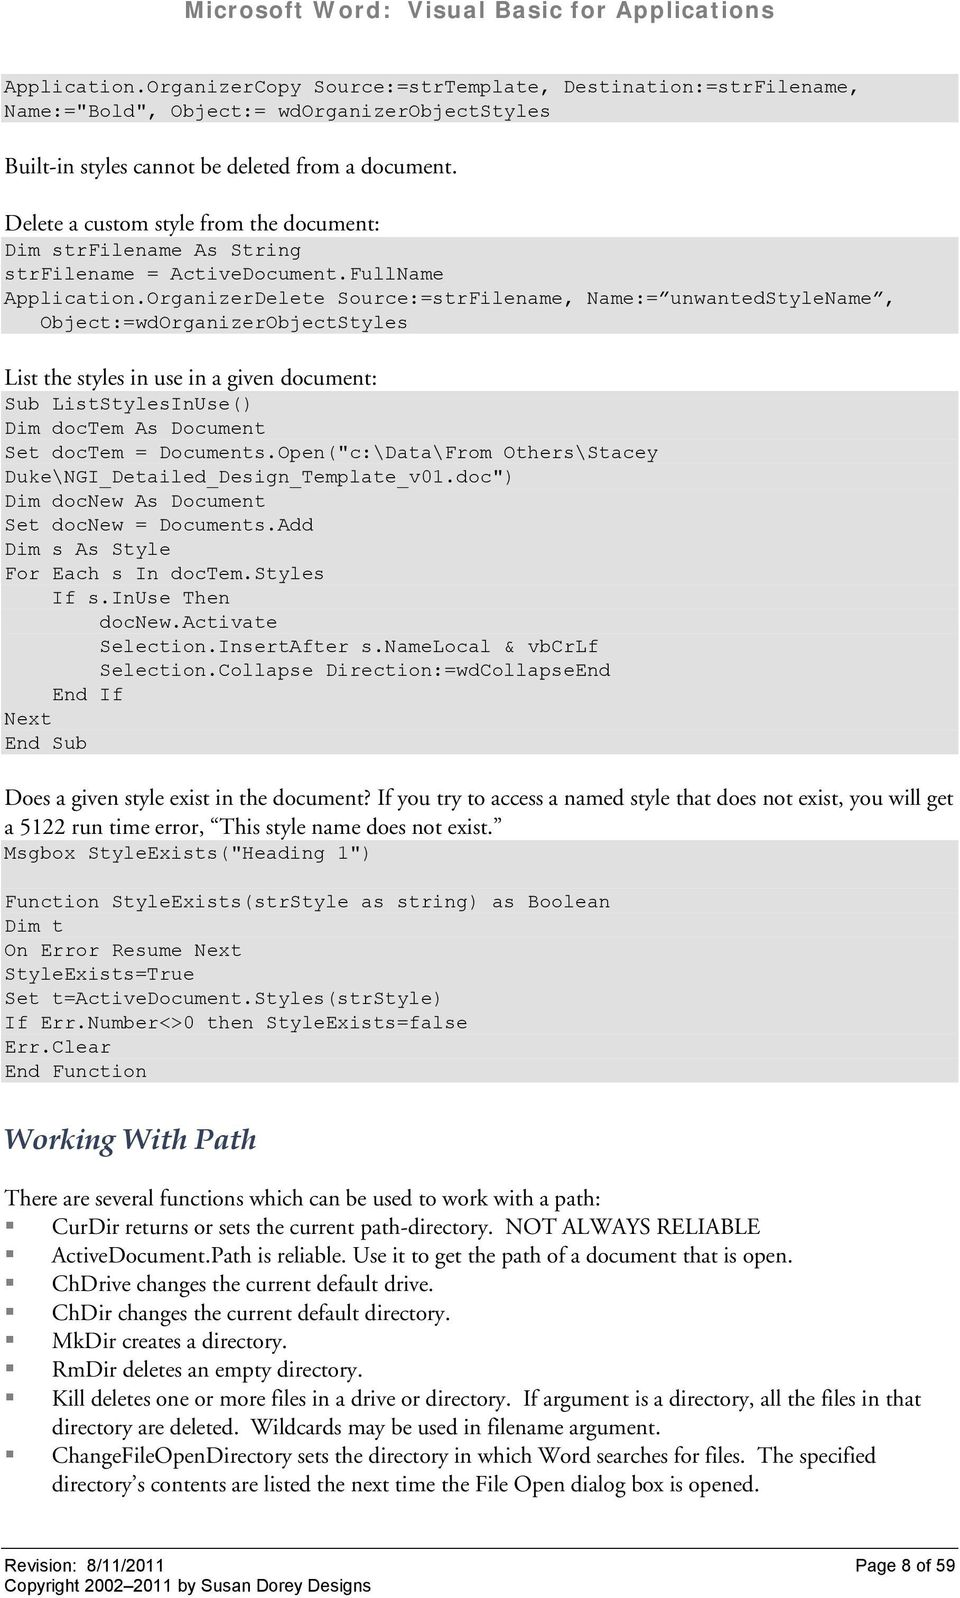 Microsoft Word: Visual Basic for Applications  See also